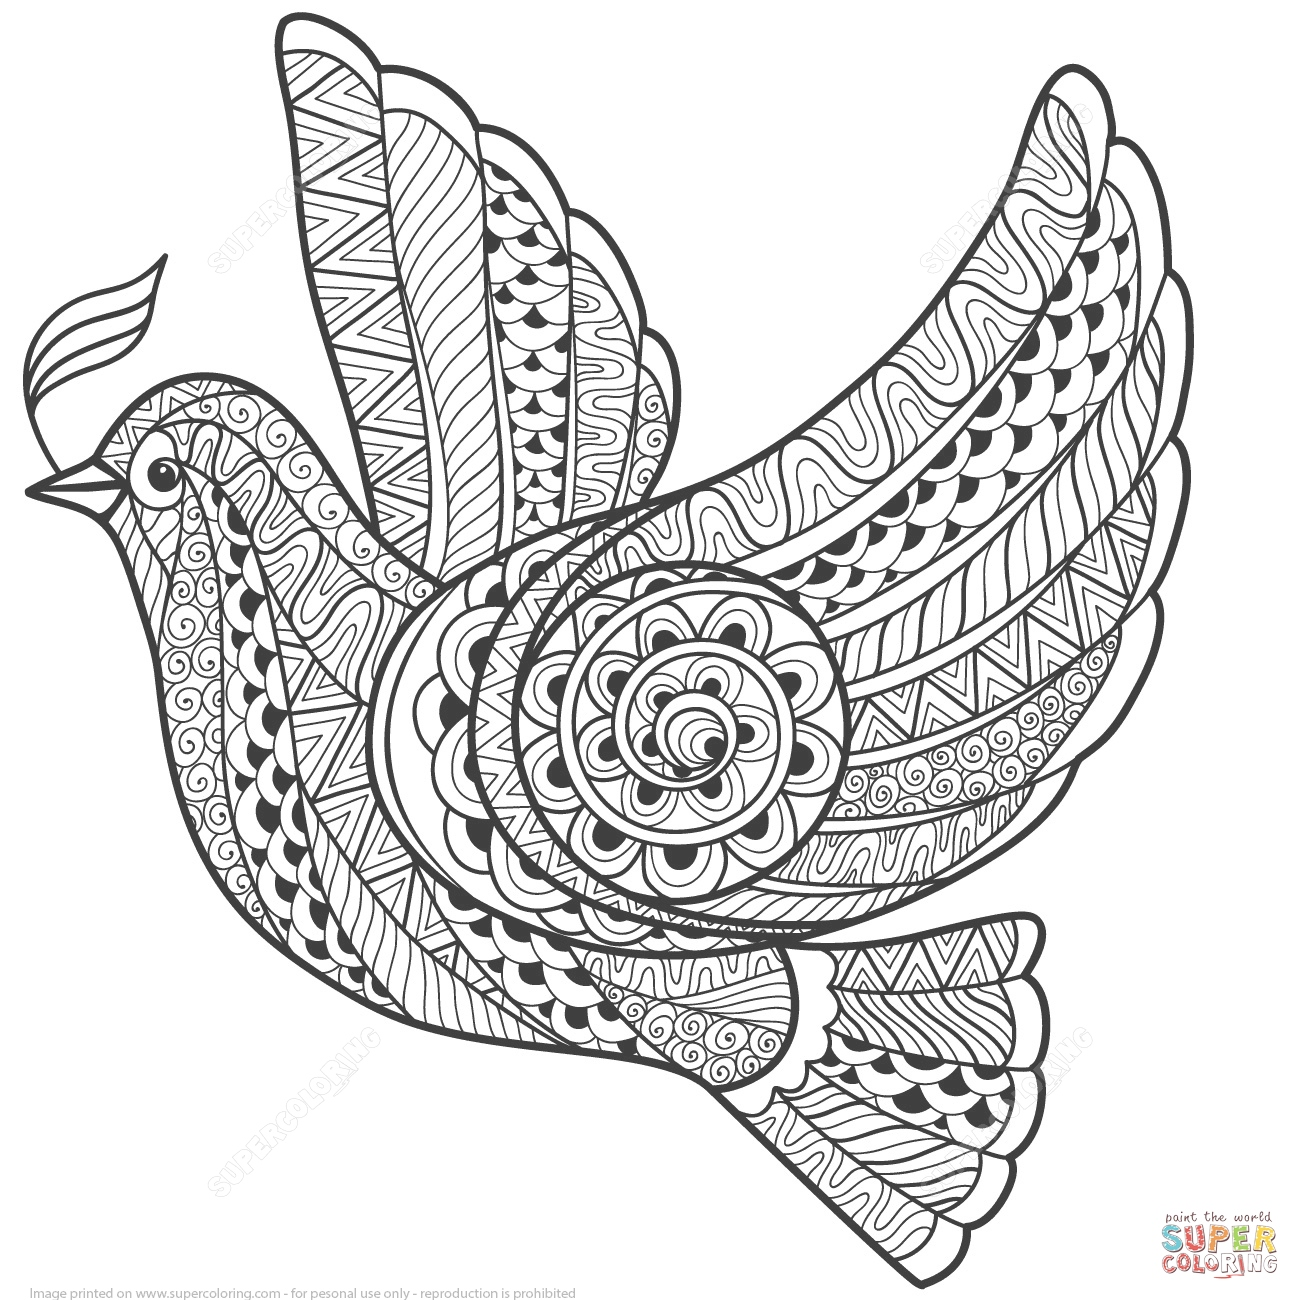 zentangle printables zentangle animal coloring pages at getcoloringscom free printables zentangle 1 1